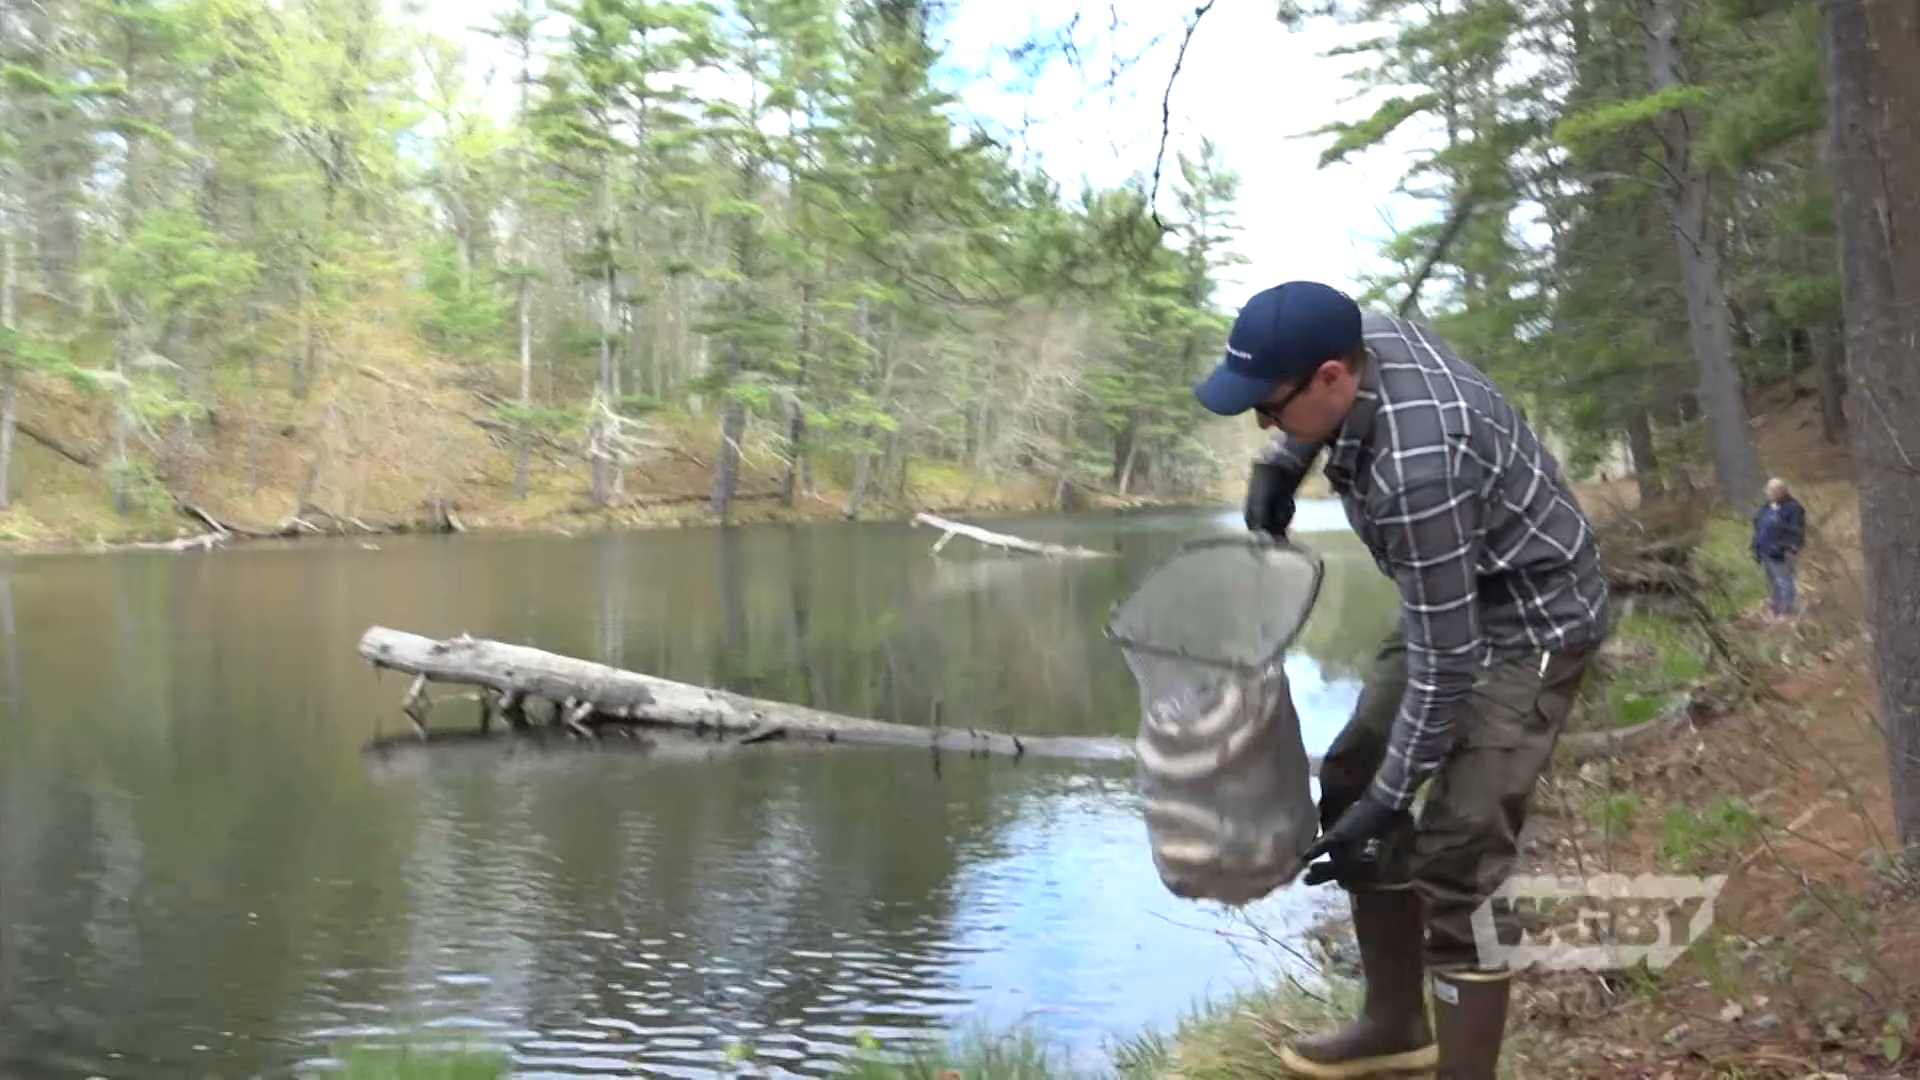 """Hook"" up with Mass Wildlife trout stock crew as they replinish the fish supply in local waterways along the Connecticut River."